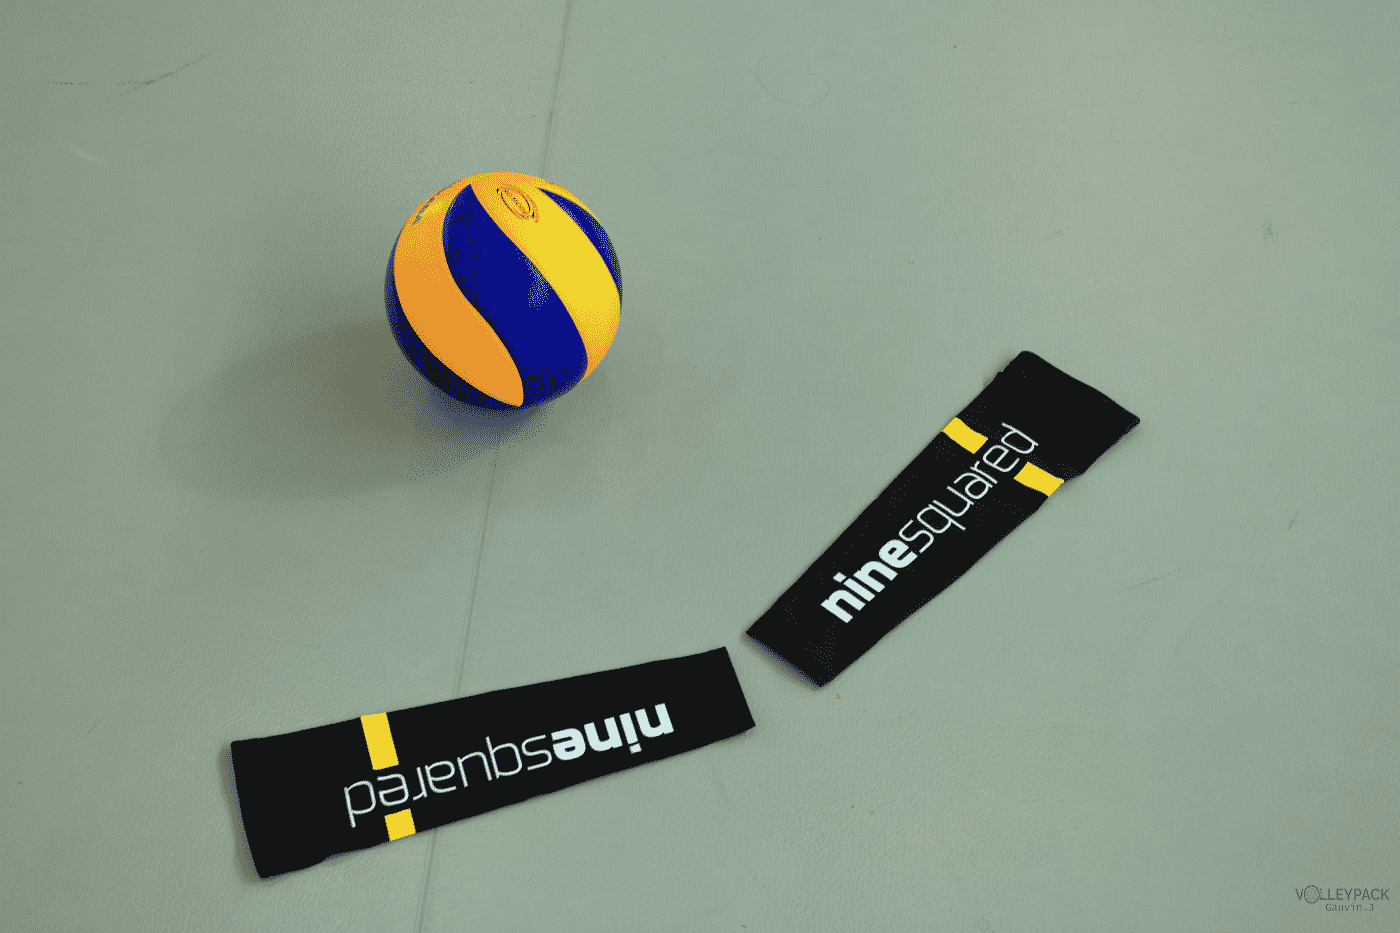 test-volleypack-manchons-volley-ninesquared-arm-sleeves-2019-7